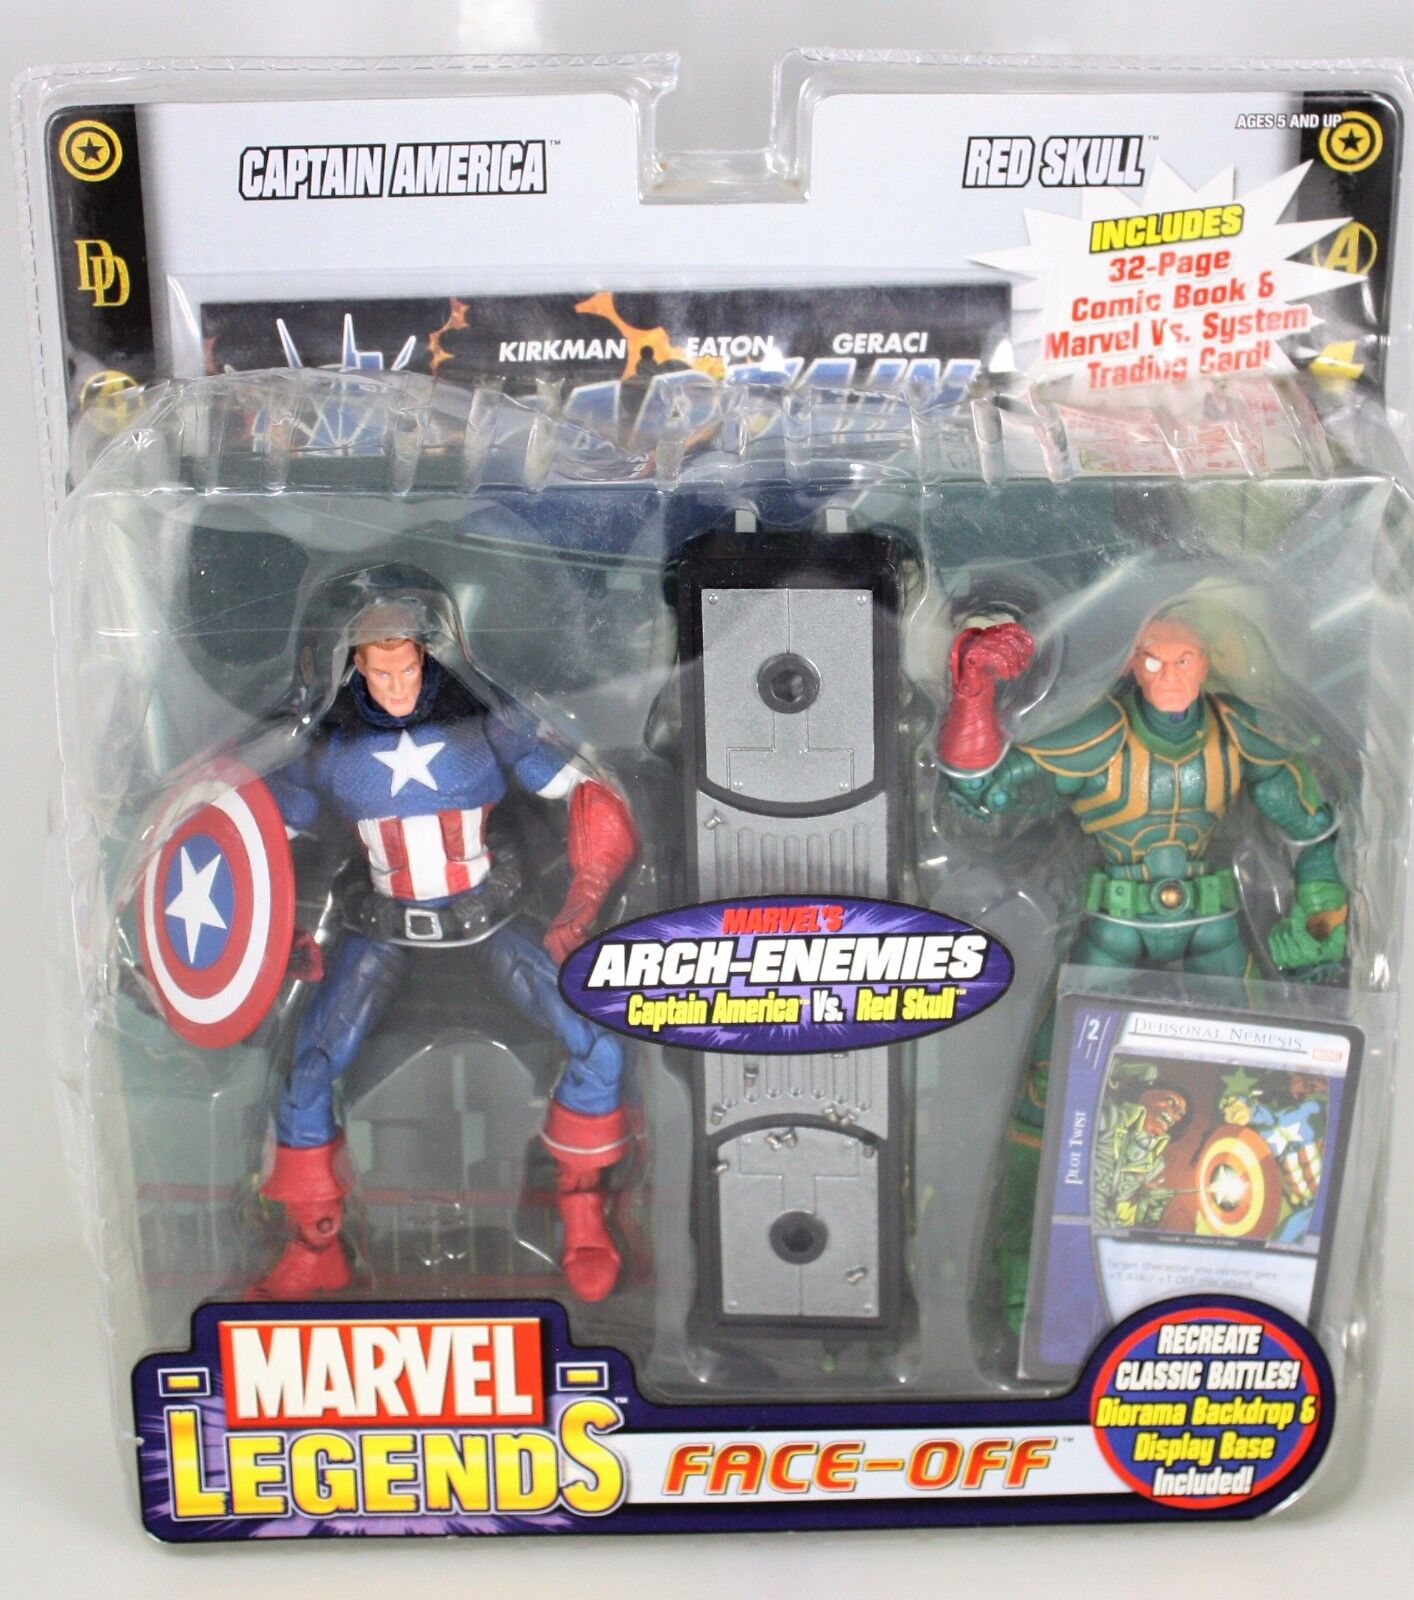 Marvel Legends Face-Off CAPTAIN AMERICA vs rosso SKULL Marvel's  ARCH-ENEMIES 2-PK  elementi di novità